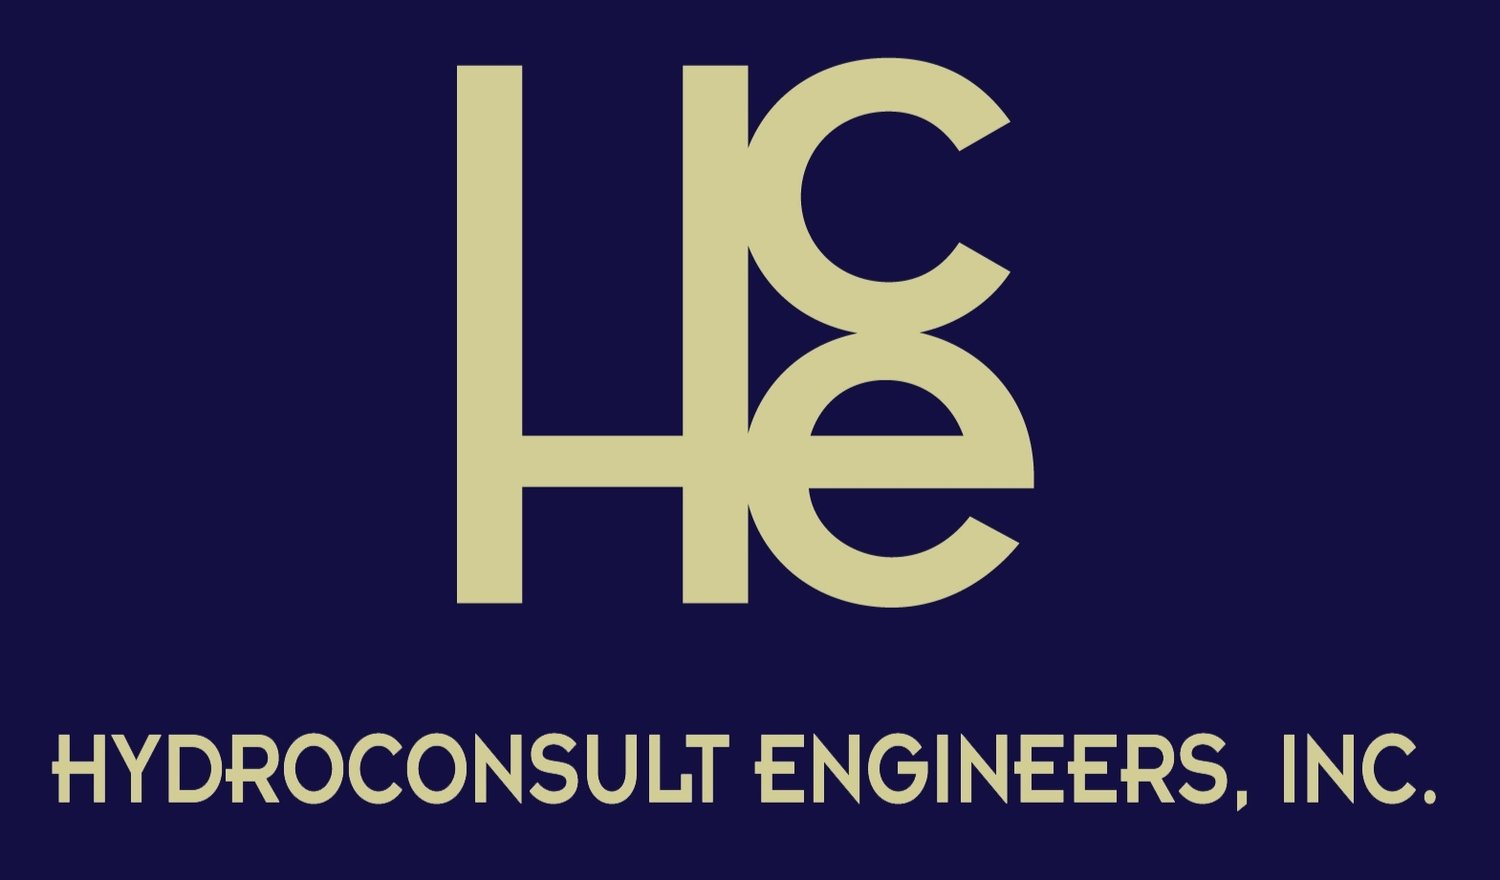 HYDROCONSULT ENGINEERS, INC